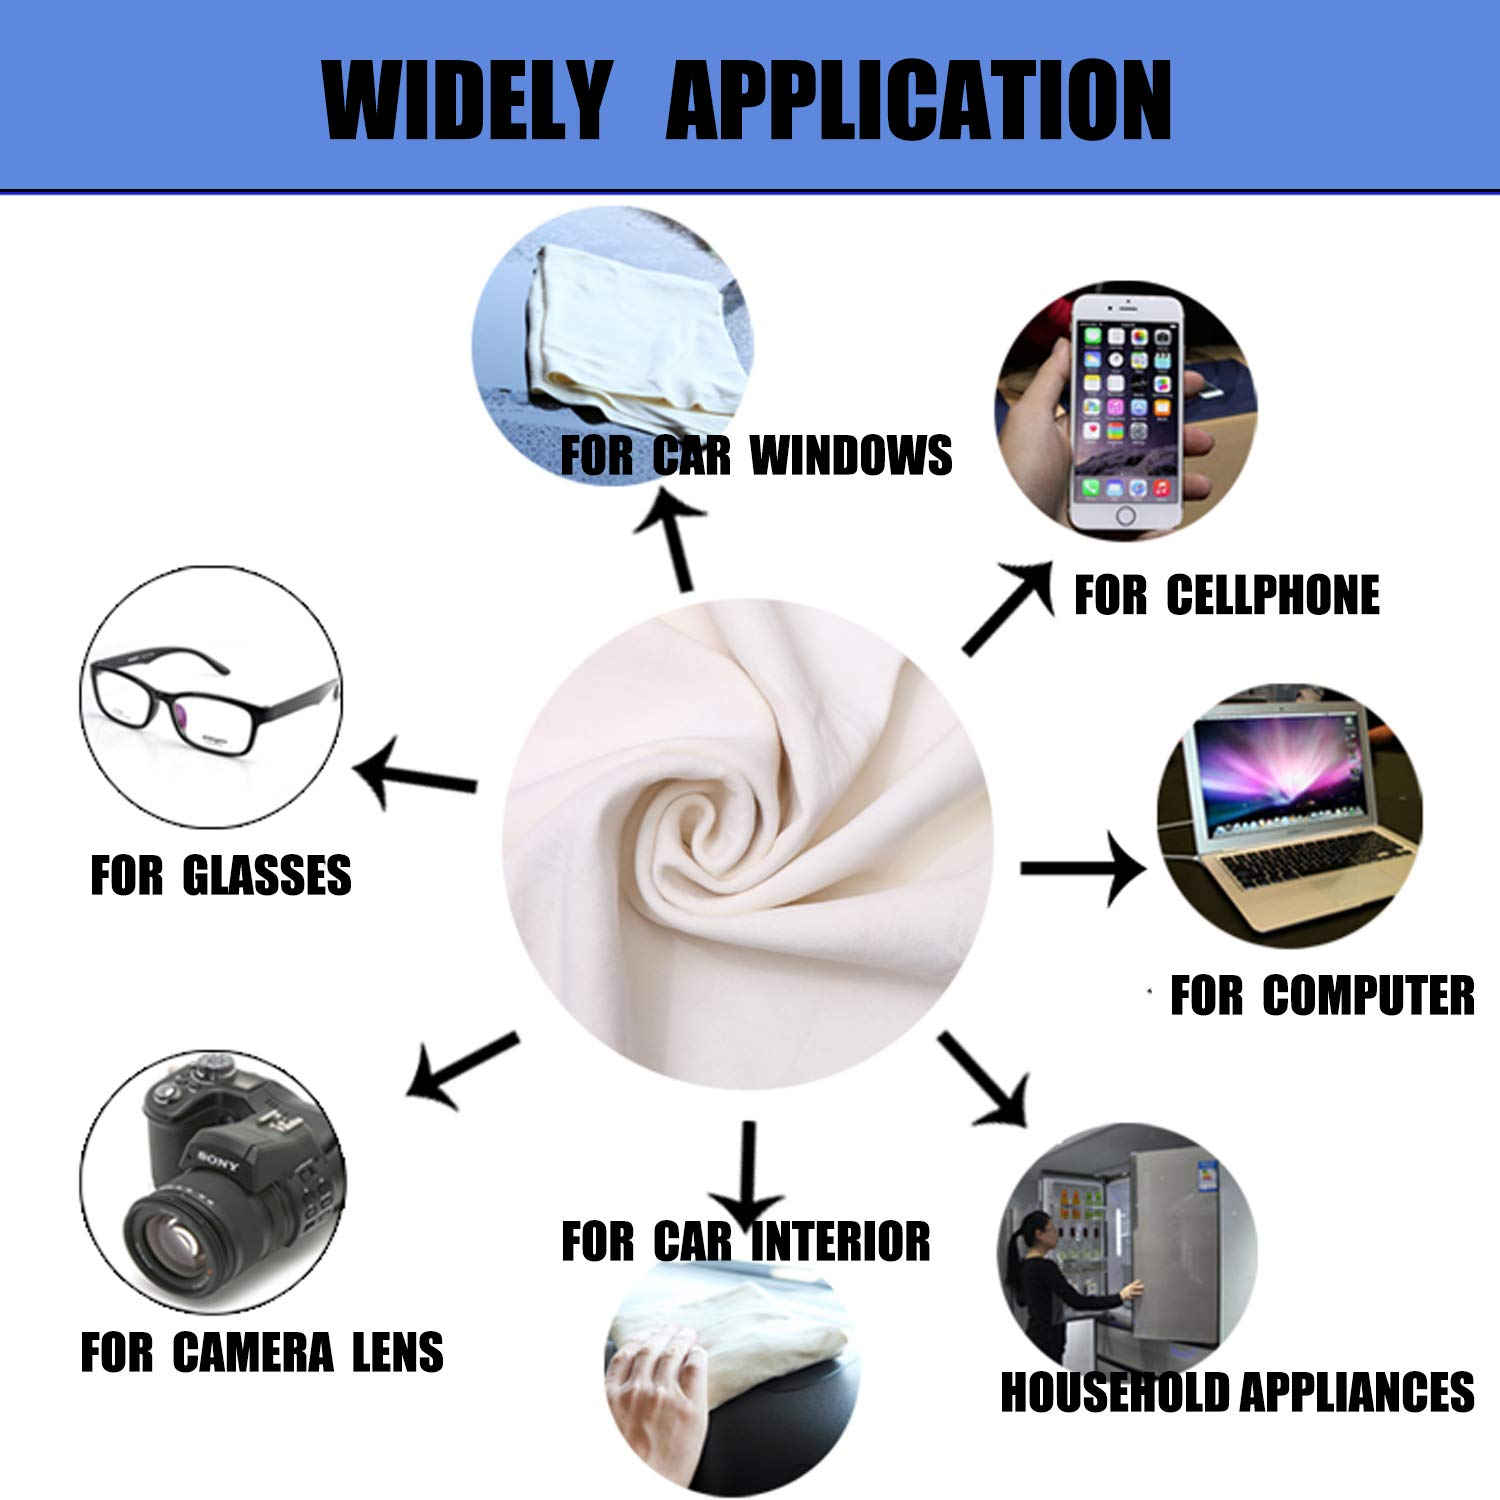 HIDMD Car Drying Chamois Towles Chamois Leather Cloth Large Natural Leather Fast Drying Car Cleaning Cloths Washing Shammy Absorbent 60CM X 90CM